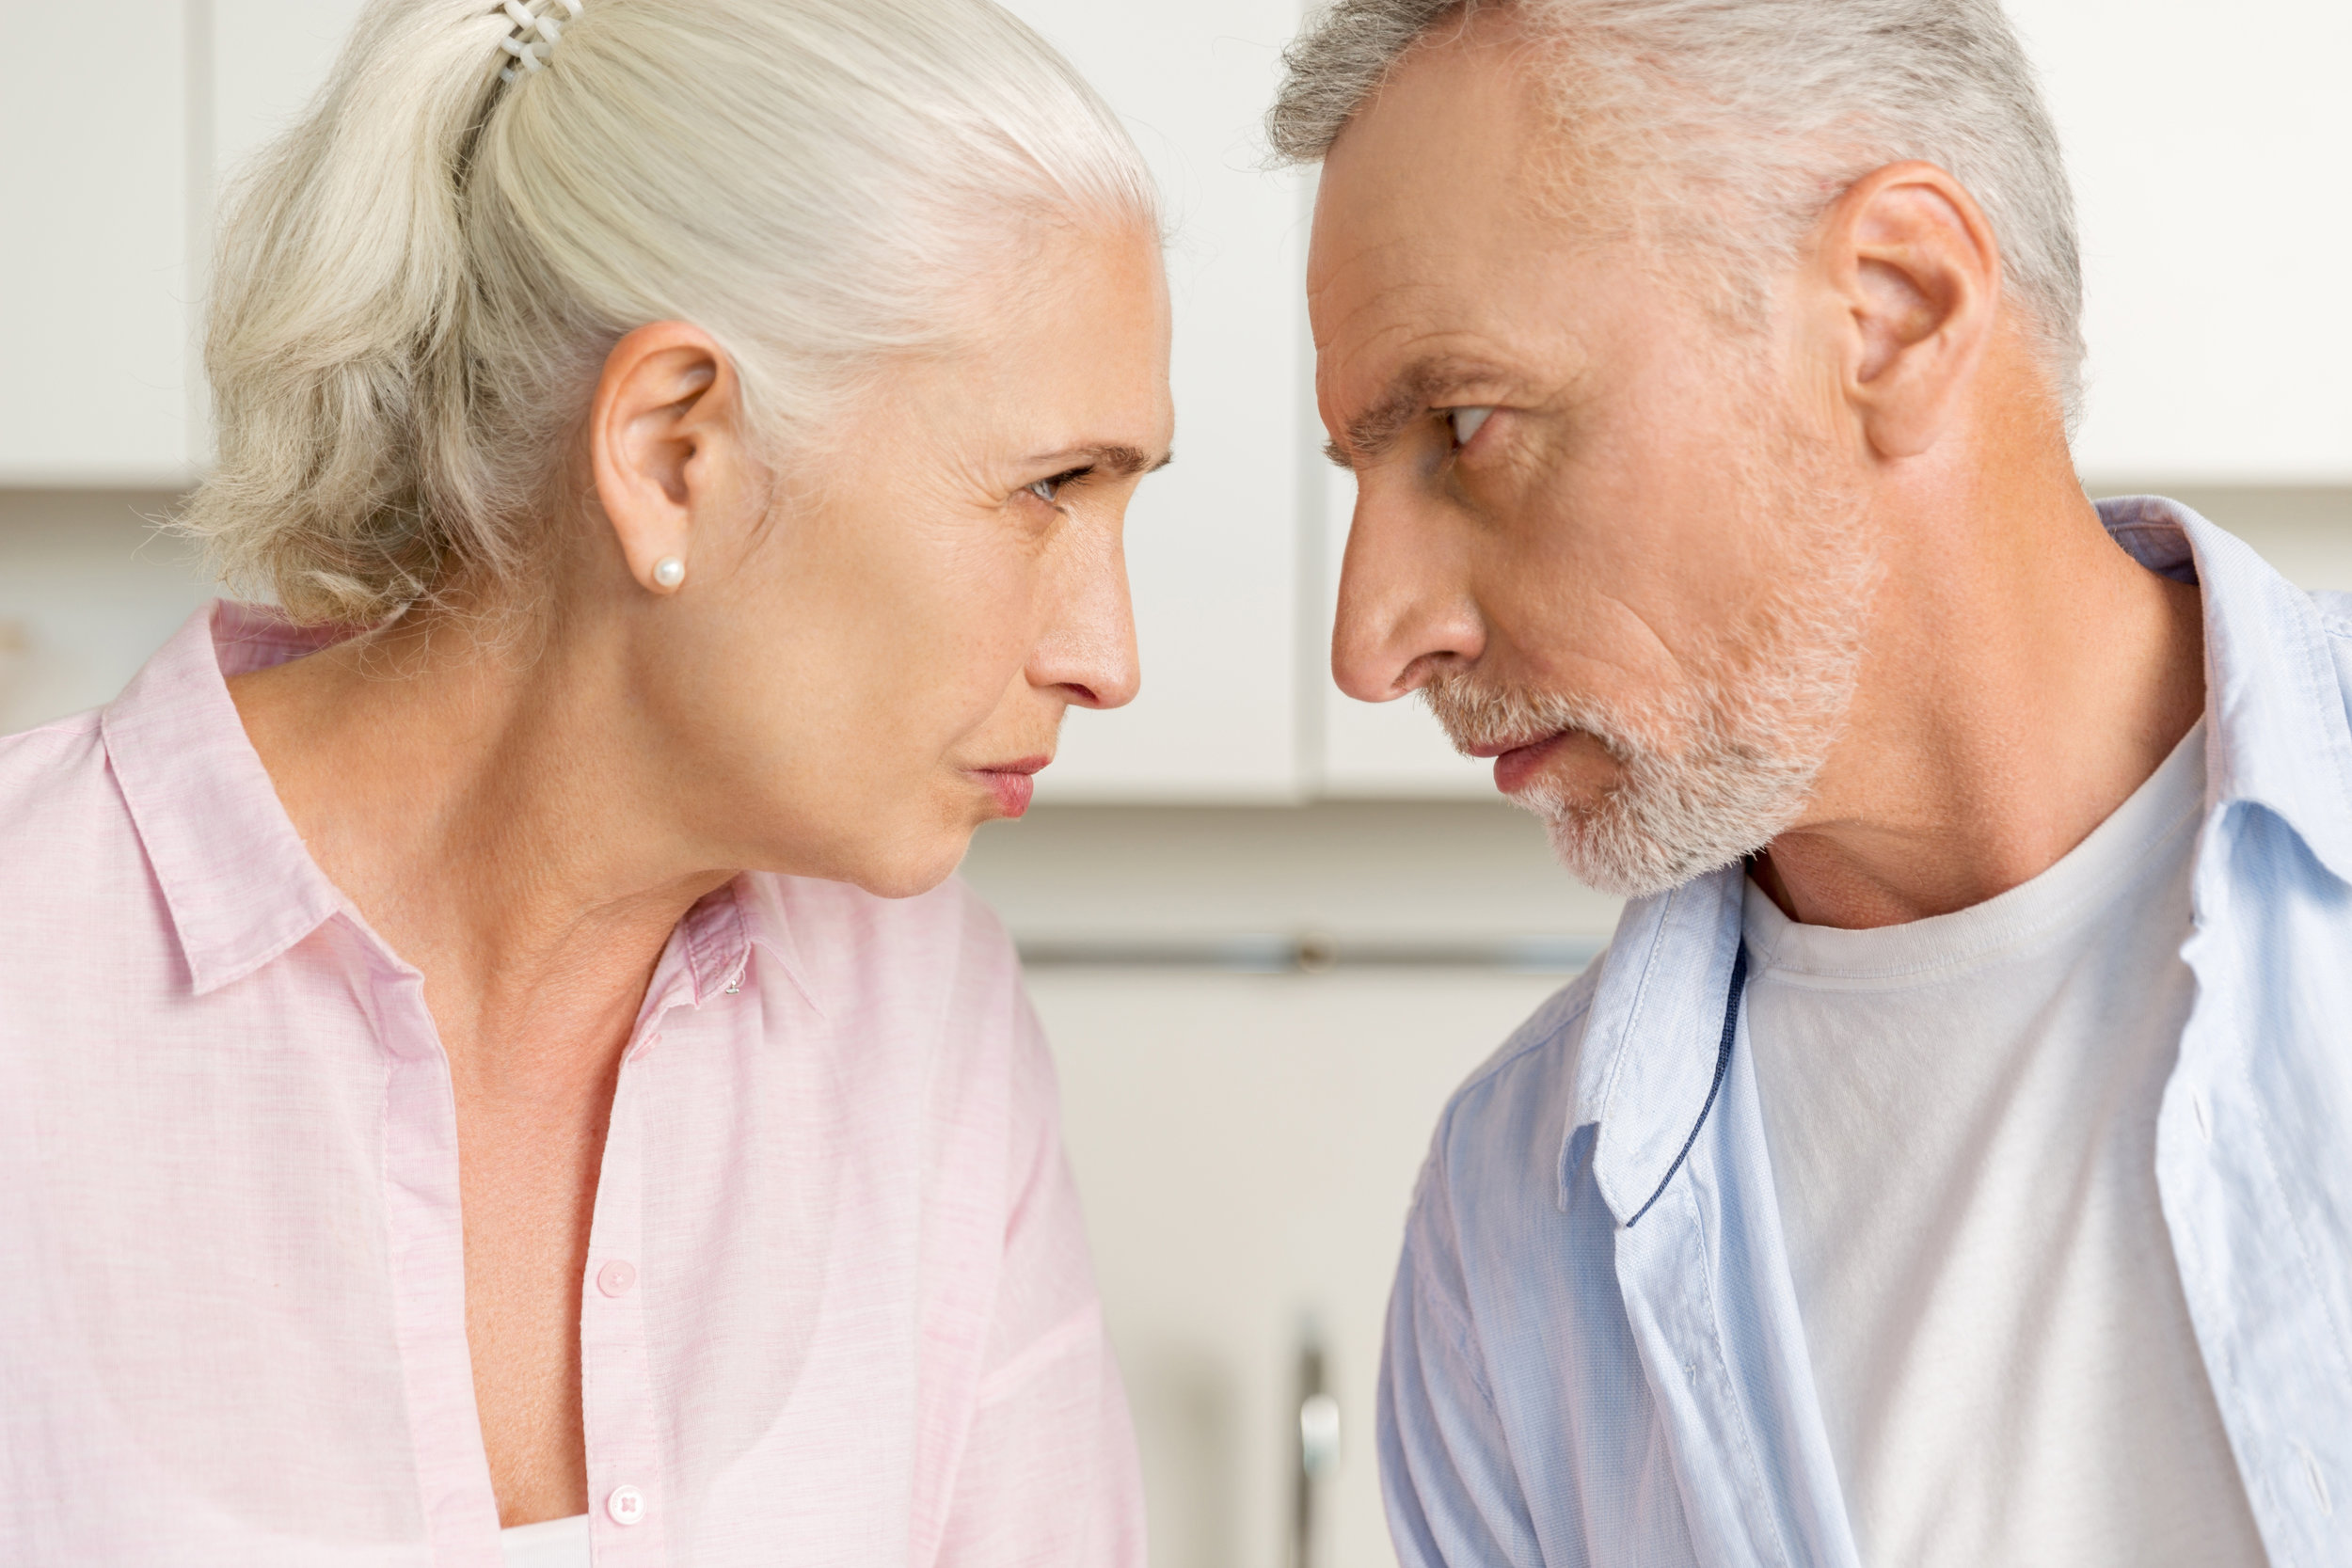 storyblocks-image-of-angry-mature-man-standing-near-mature-serious-woman-at-the-kitchen-looking-at-each-other_S0gGkH3pcZ.jpg